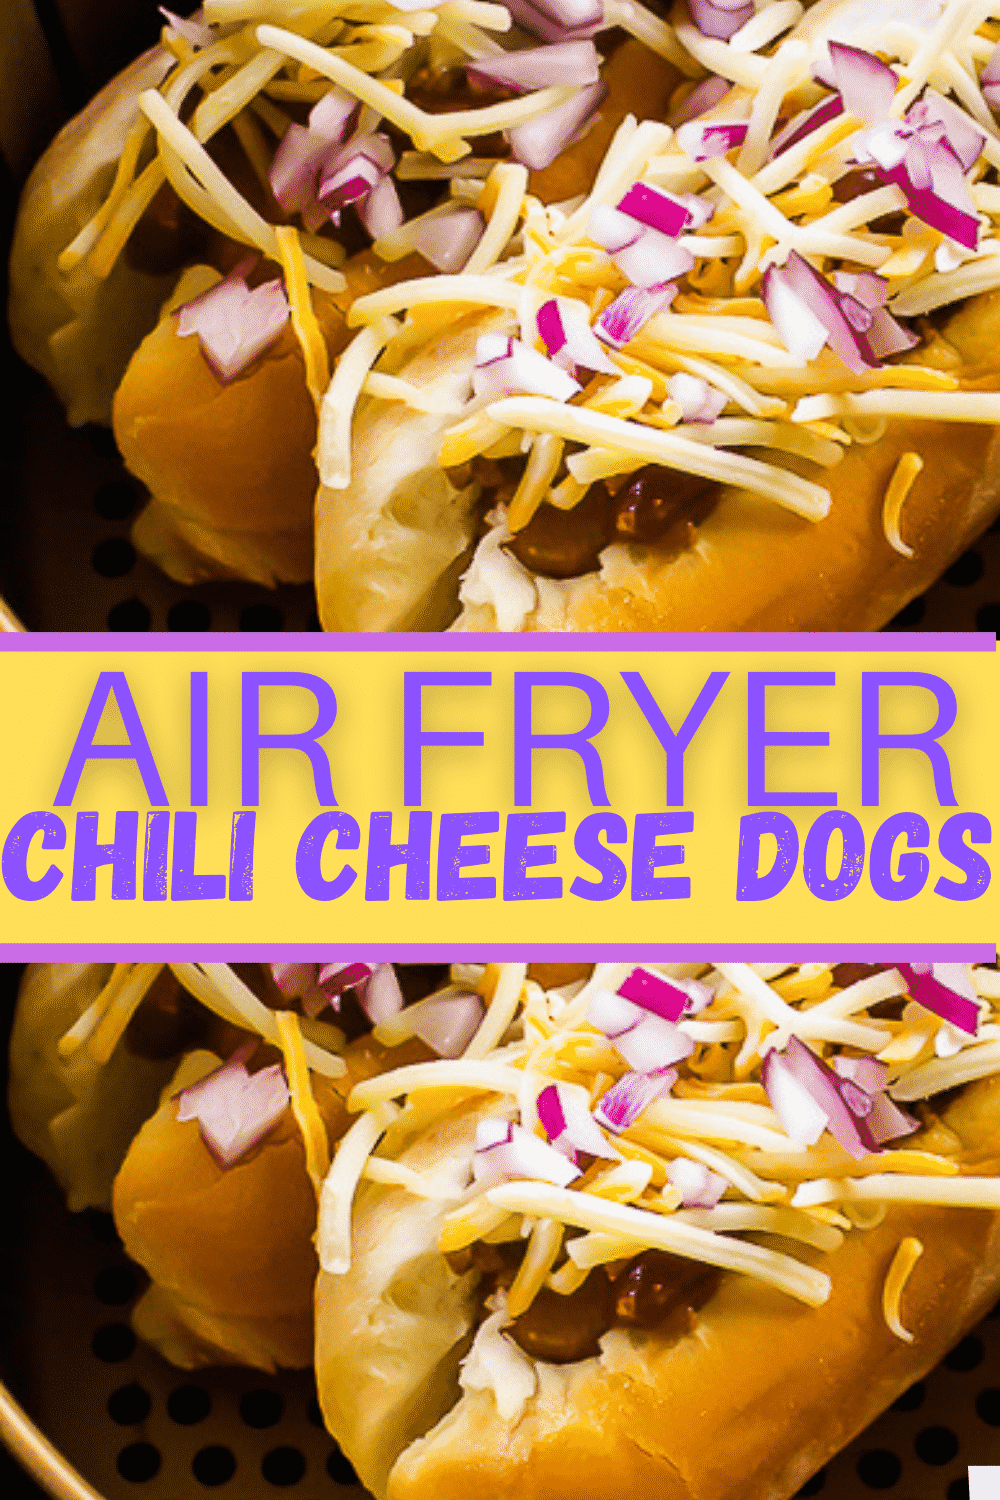 These Air Fryer Chili Cheese Dogs are quick to make, easy to assemble, and perfect for feeding a crowd! You'll dream of ballpark days with these chili dogs. #partyfood #chilicheesedogs #airfryerchilidogs via @vegetarianmamma